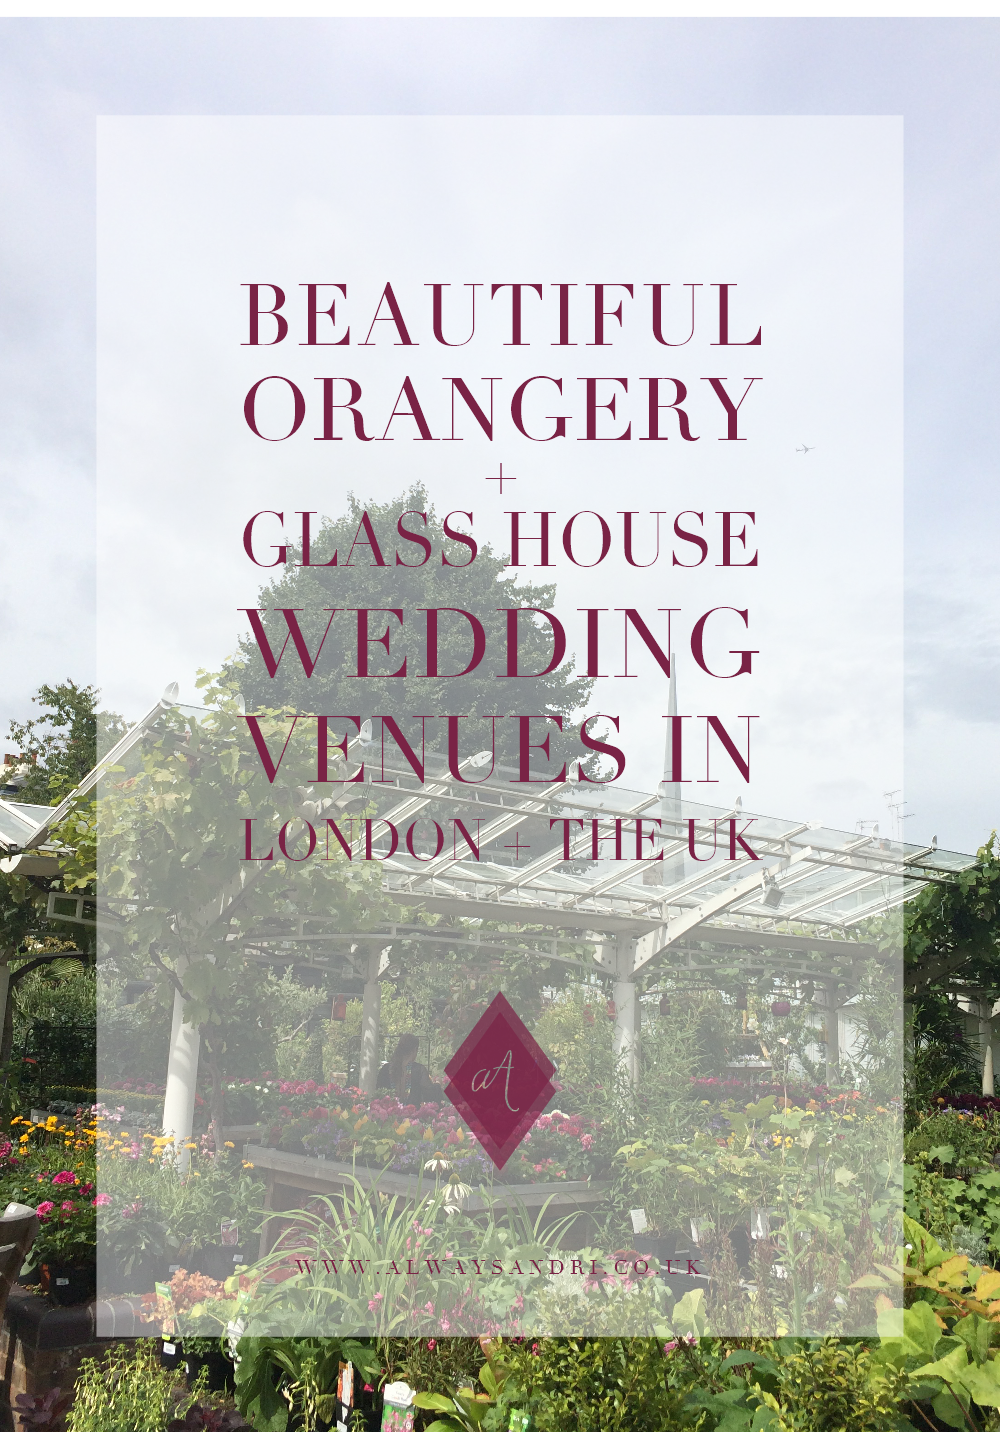 The most beautiful Orangery style wedding venues in London and the UK